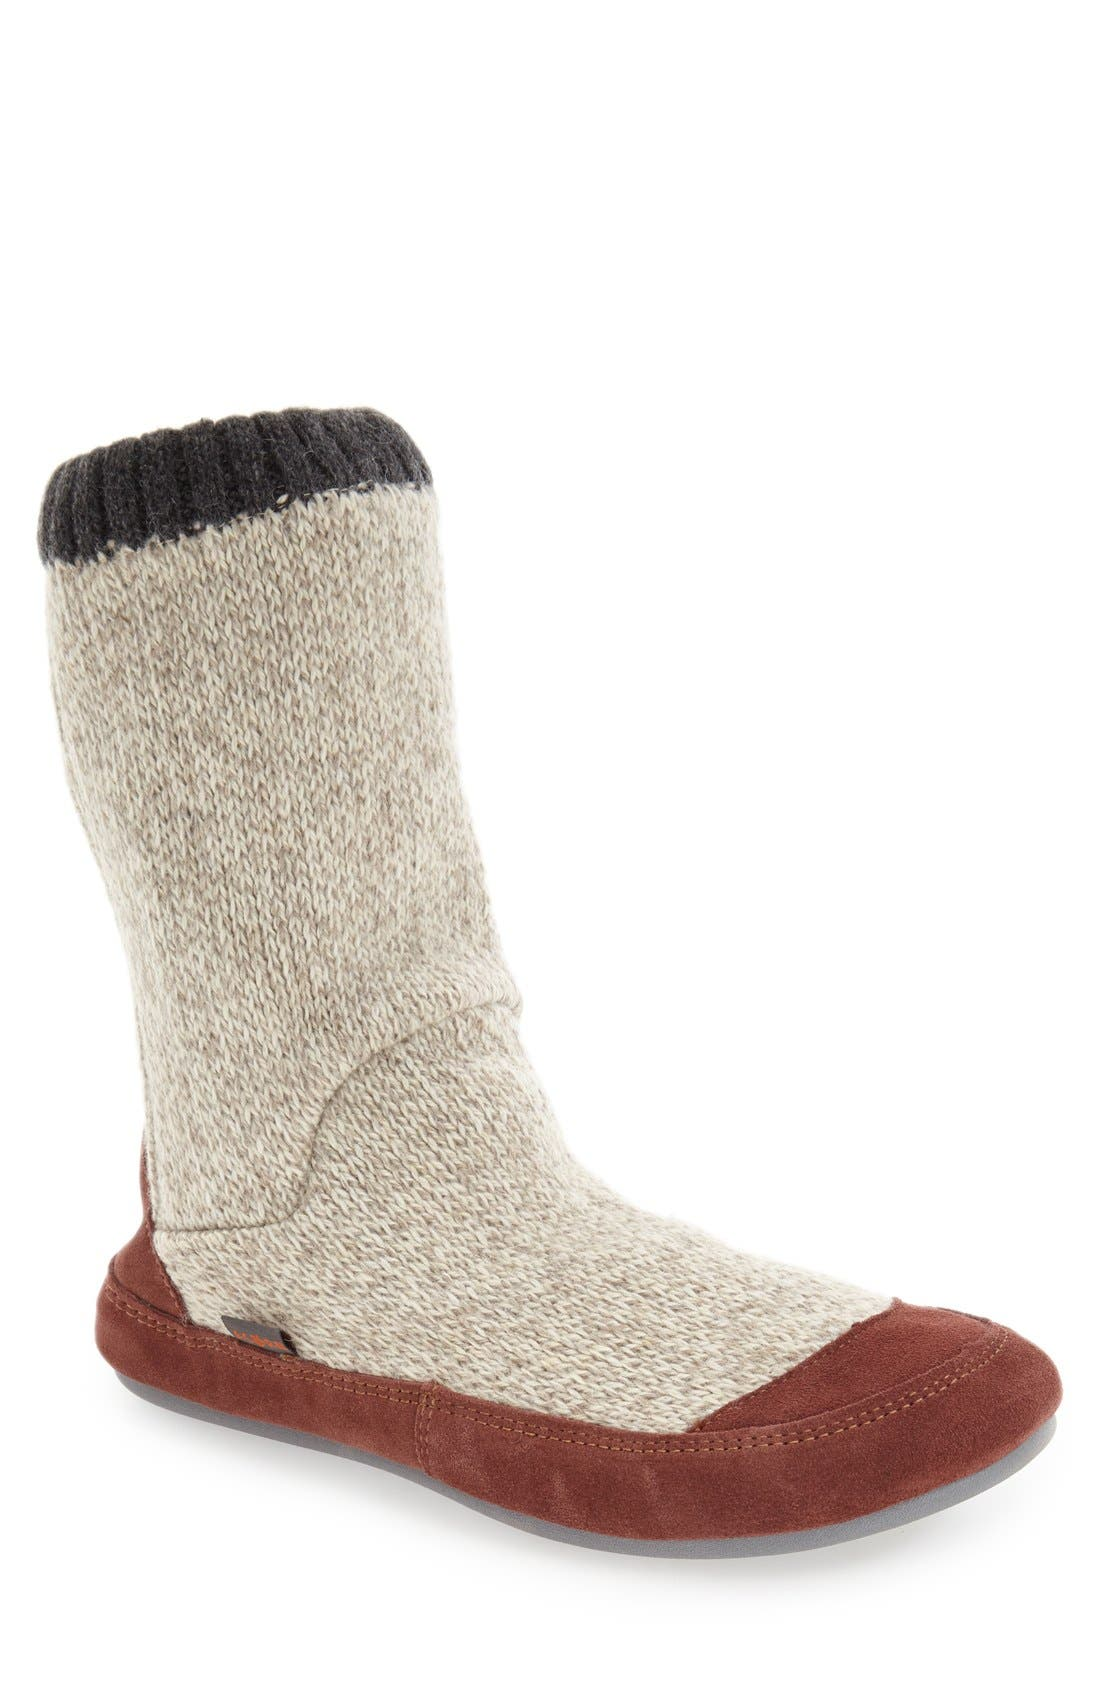 'Slouch Boot' Slipper,                             Main thumbnail 2, color,